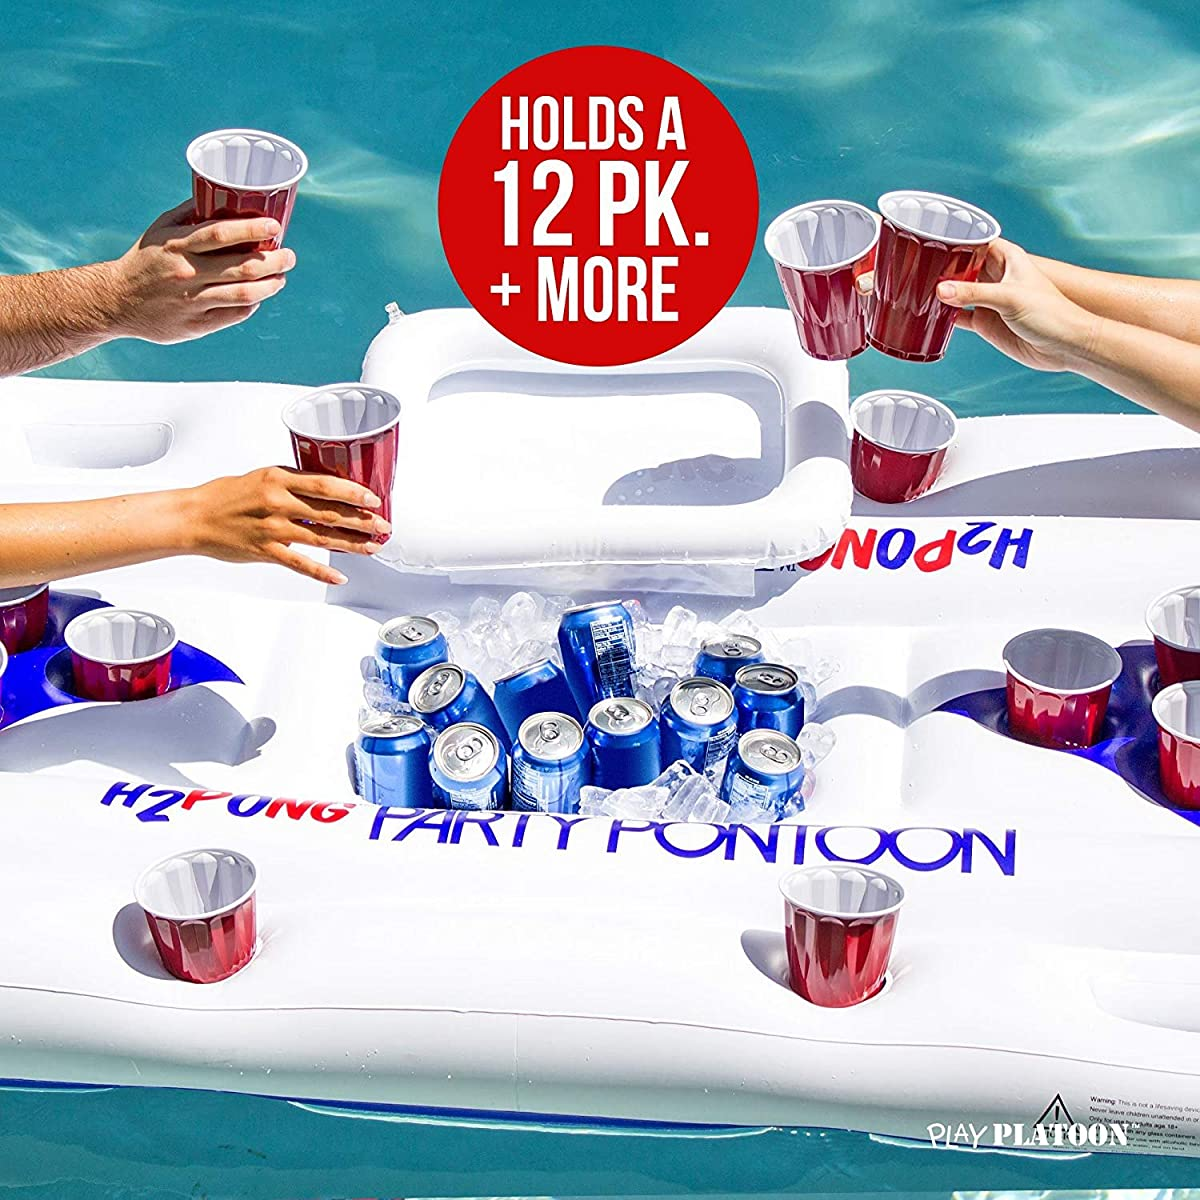 Play Platoon H2PONG Inflatable Beer Pong Table with Built in Cooler, Includes 5 Ping Pong Balls - Floating Pool Party Game Raft and Lounge